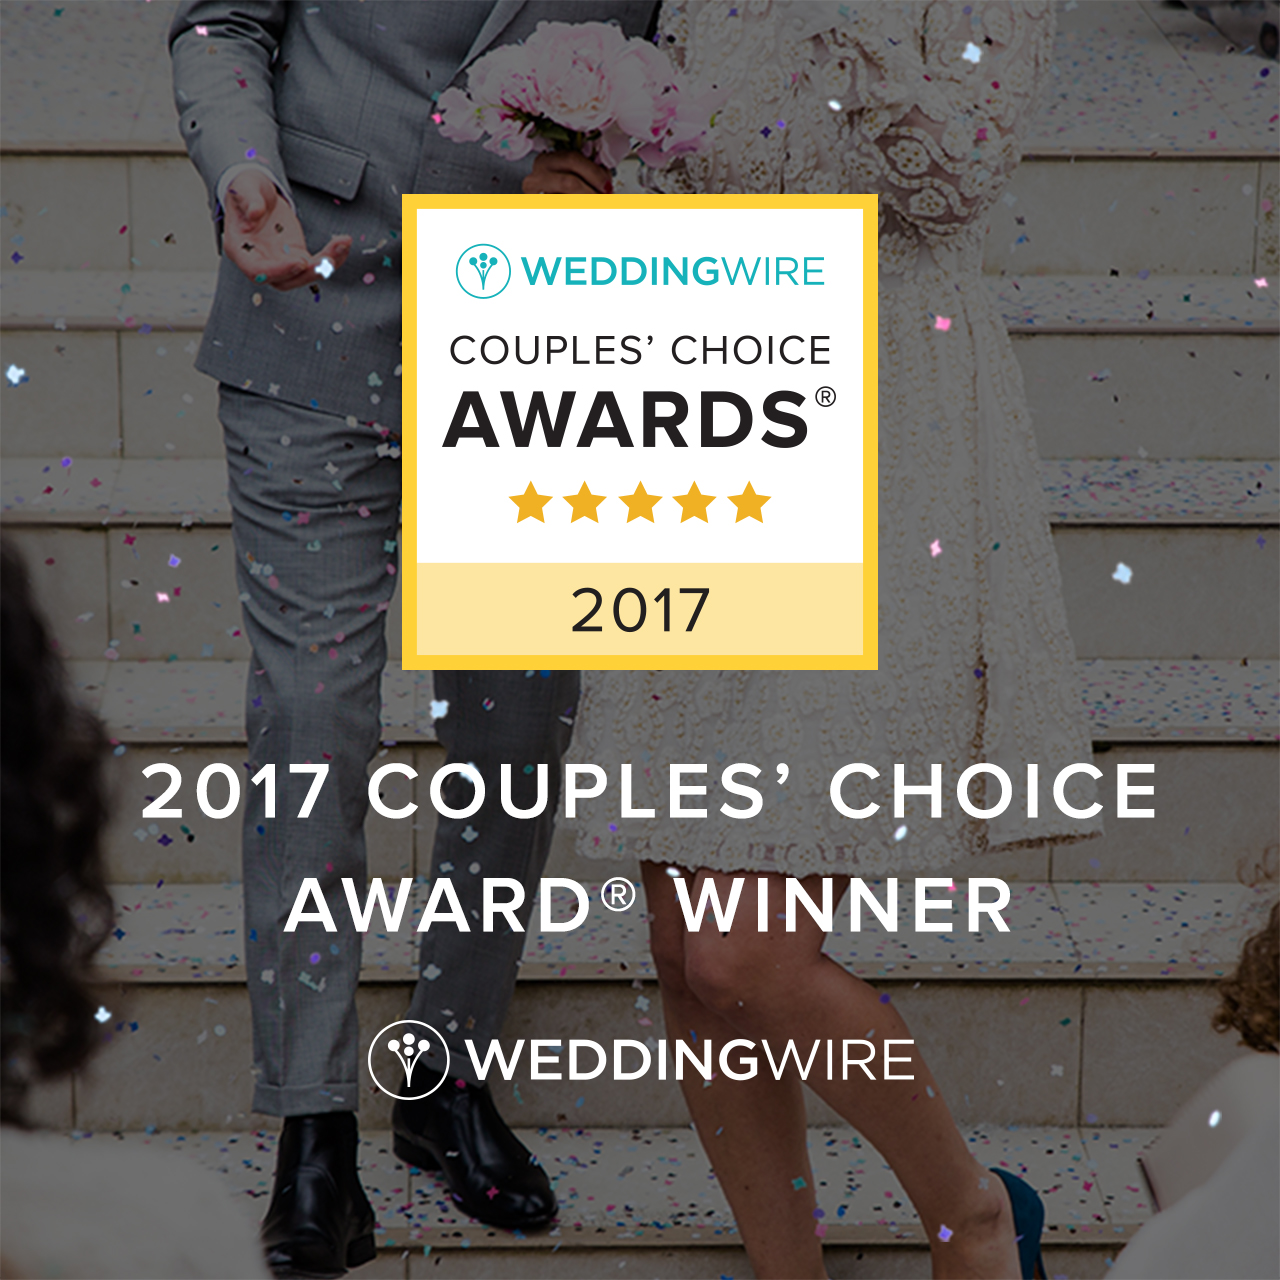 2017 Couples' Choice Award Winner